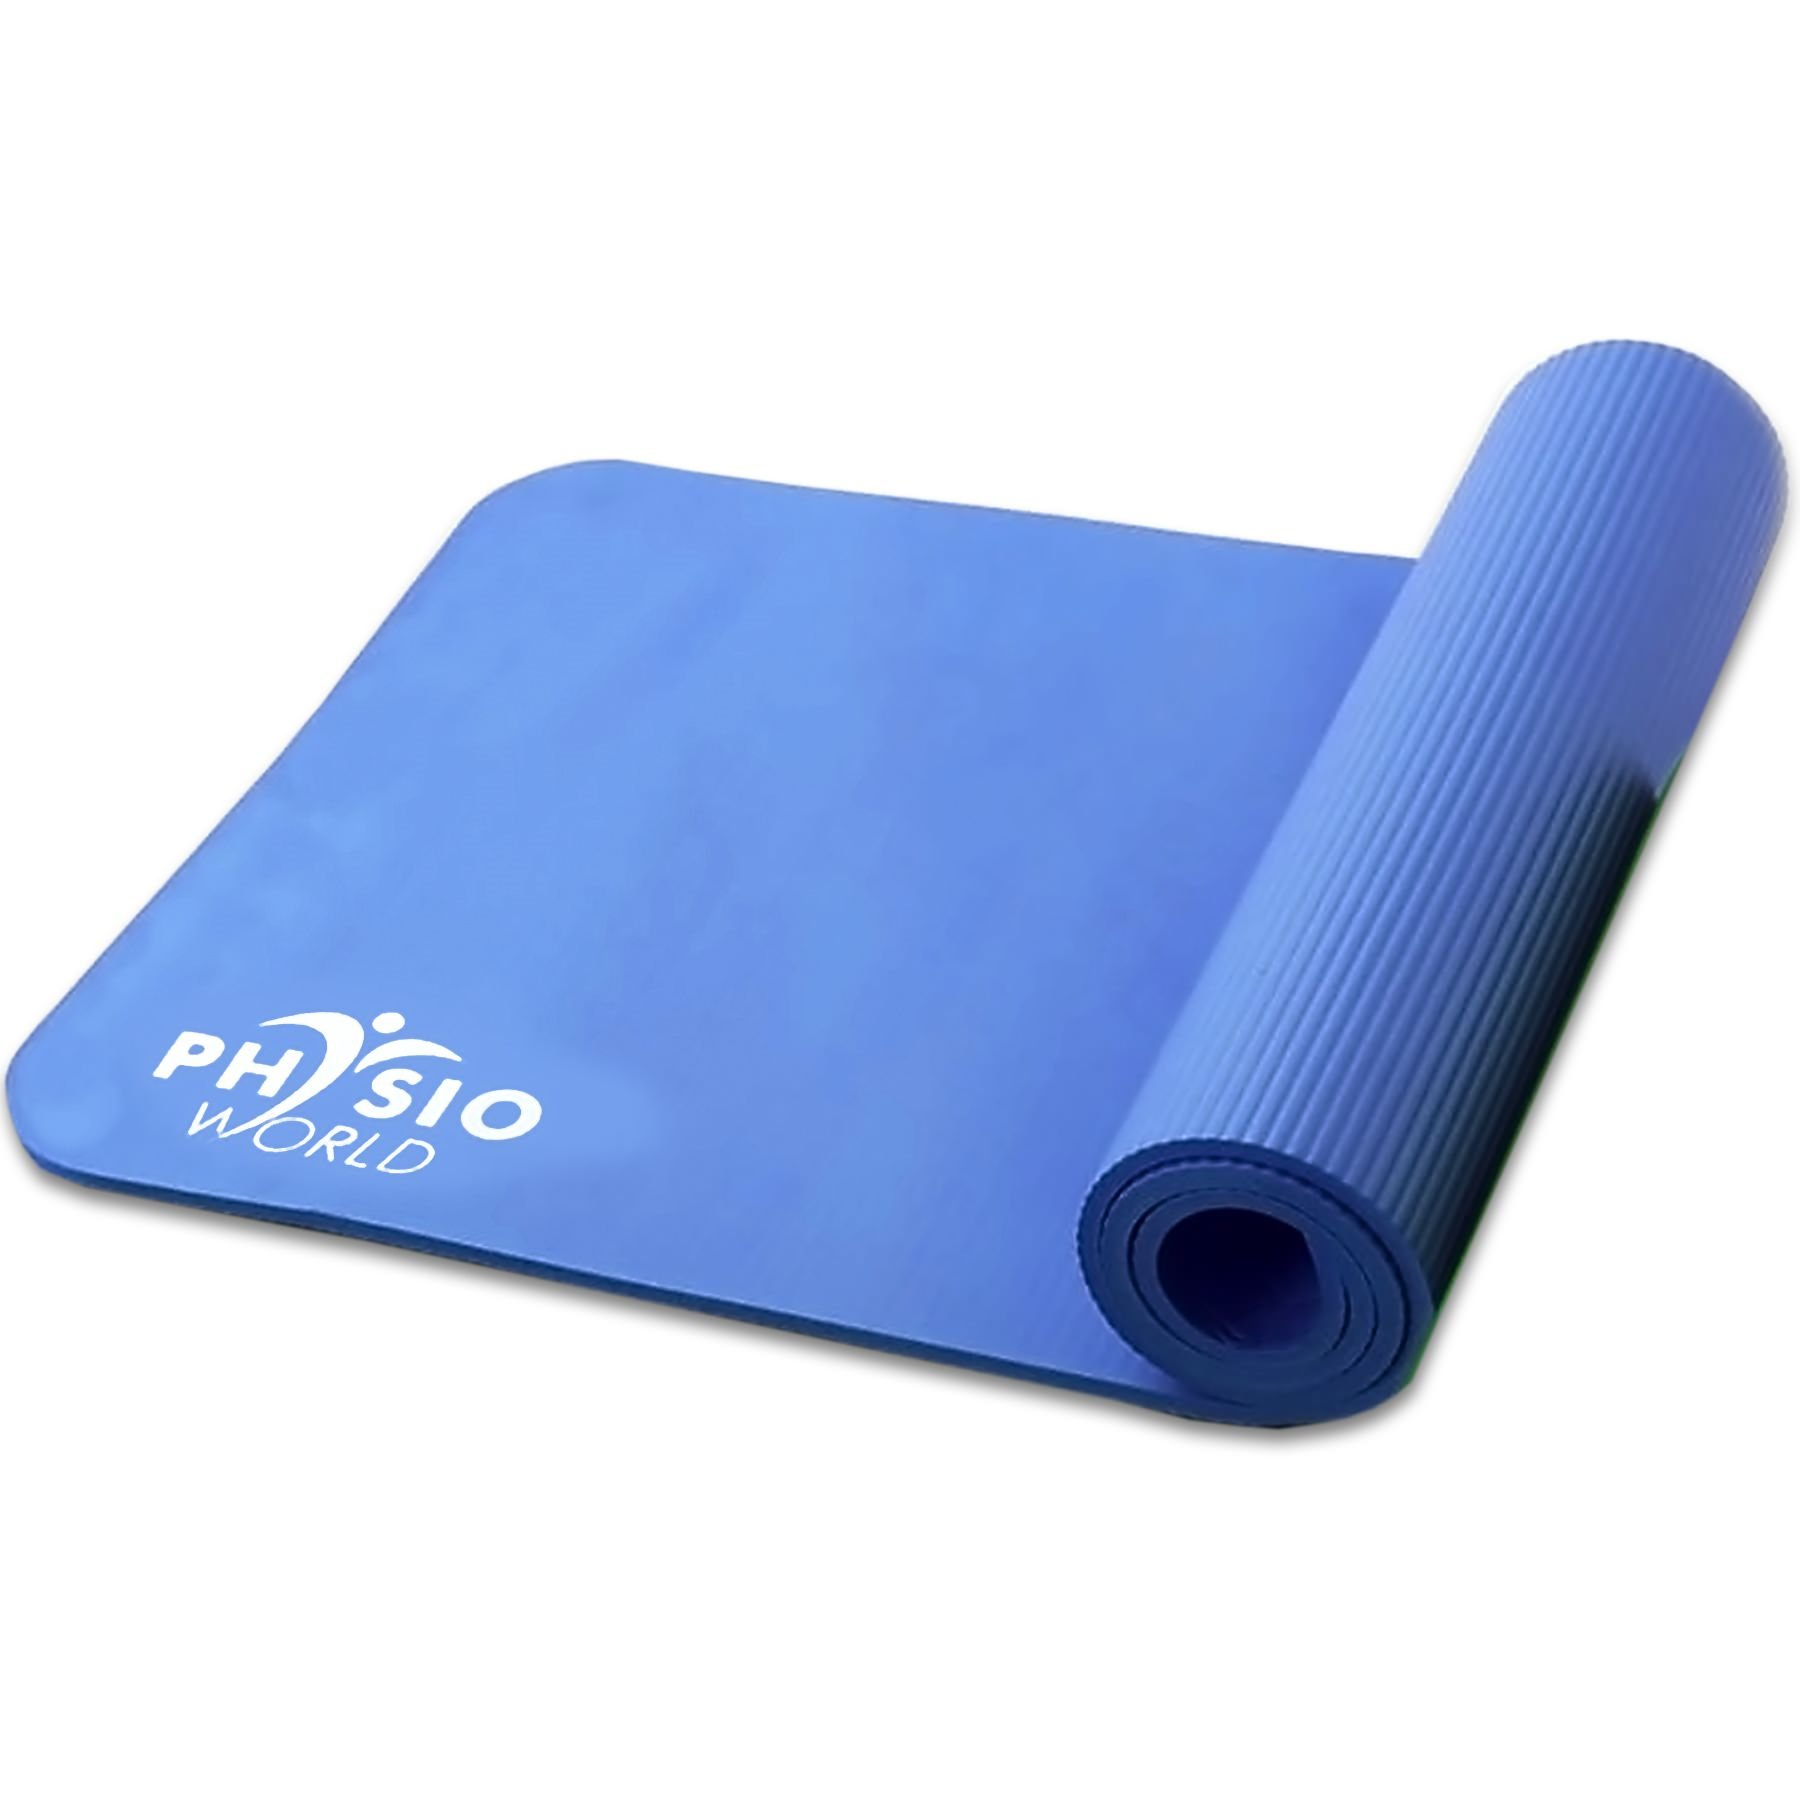 Physio World Thick Exercise Mat - 15mm Blue by phy (Image #1)